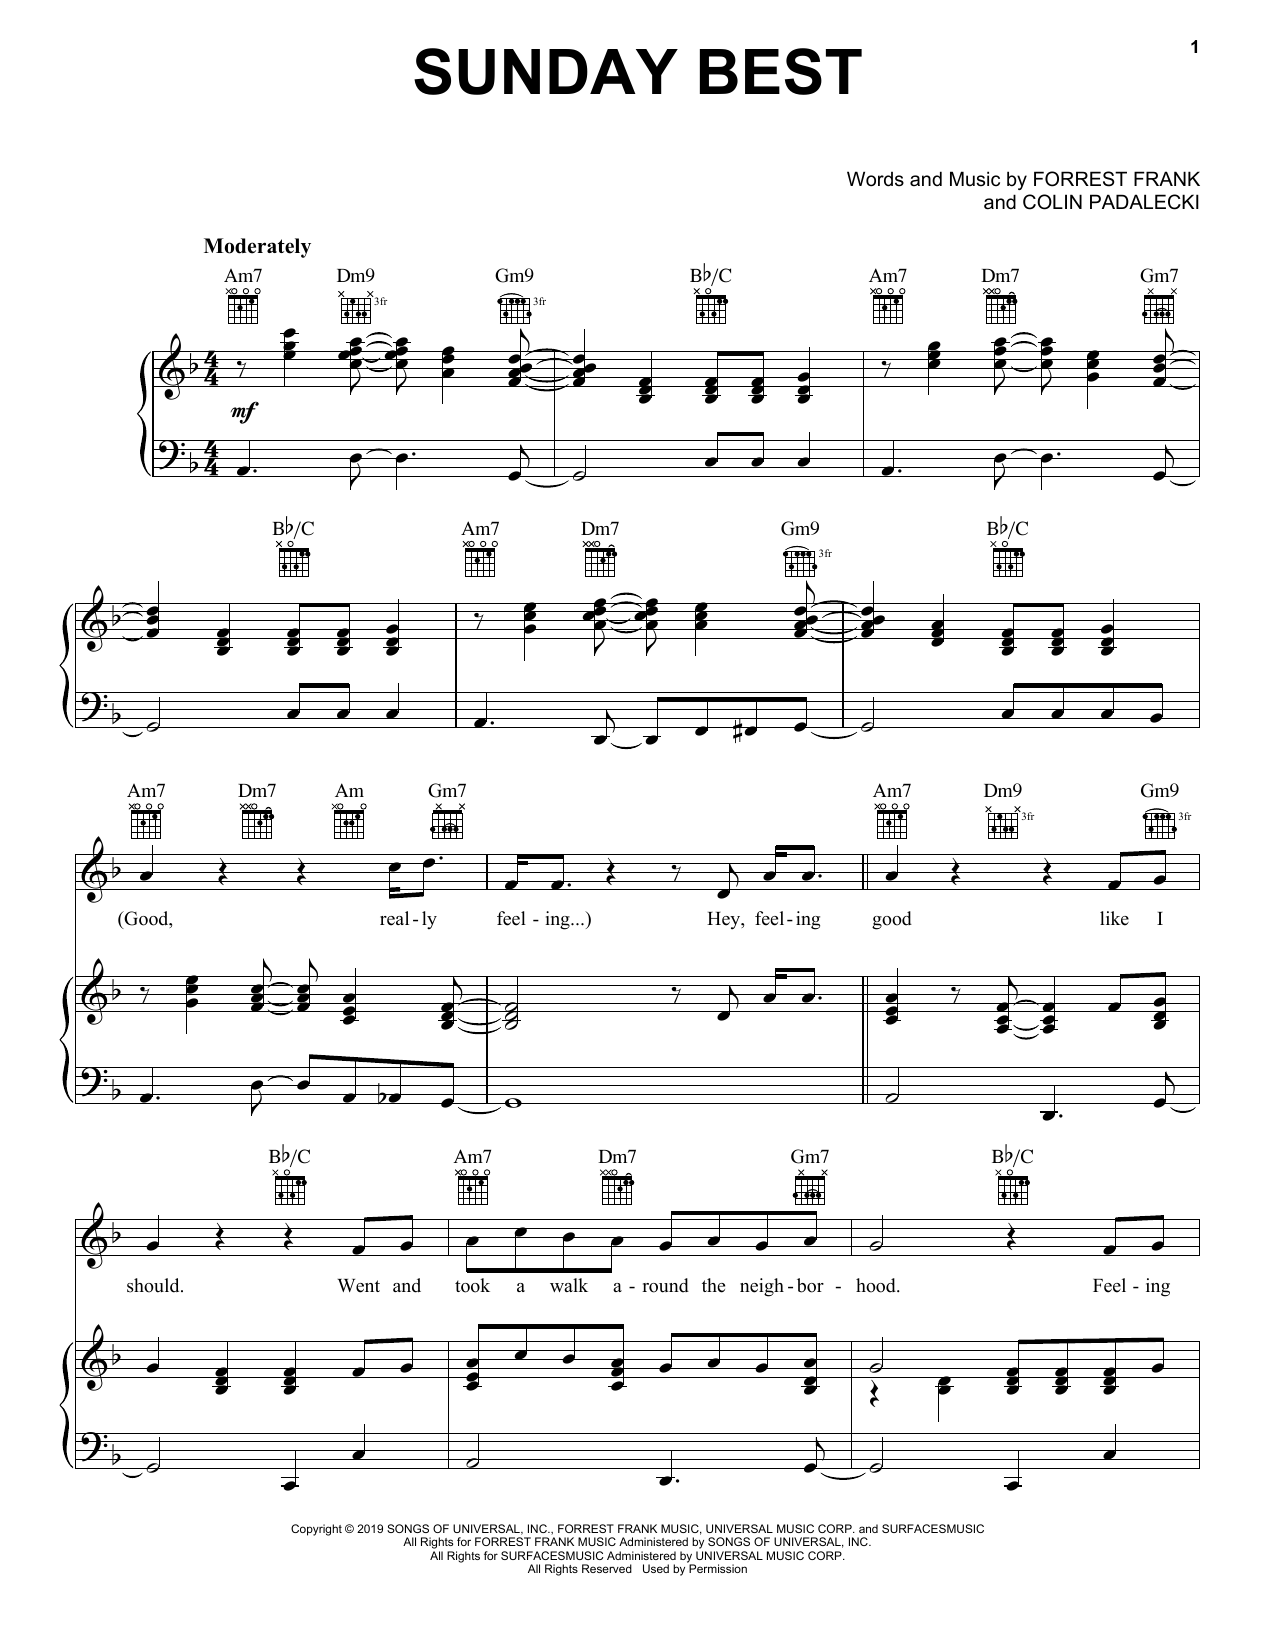 Surfaces Sunday Best sheet music notes and chords. Download Printable PDF.